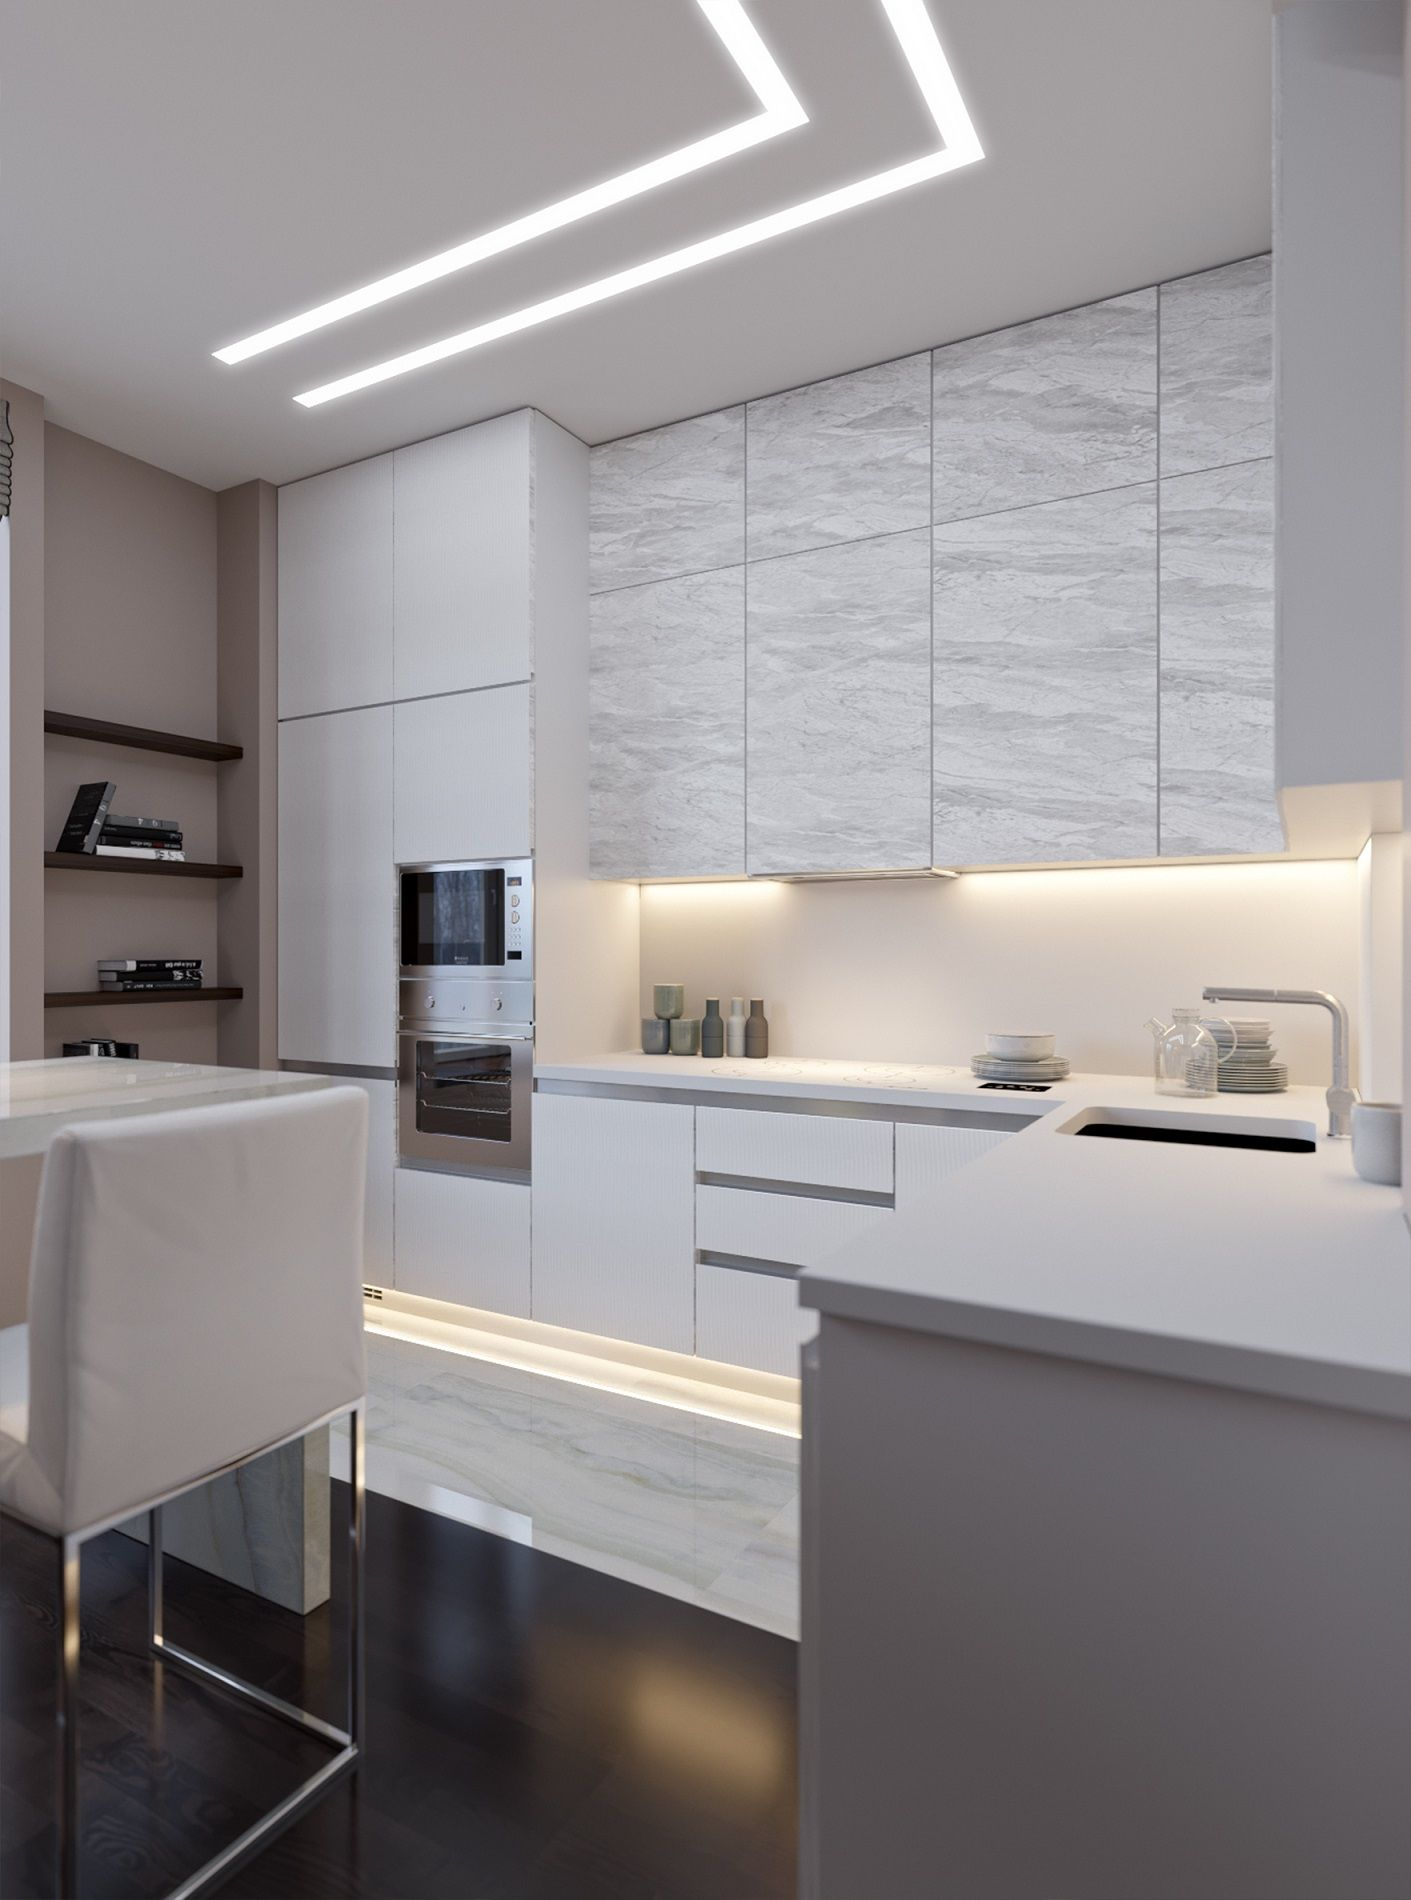 15 Ways To Use Led Strip Lights In Your Home Interior Design